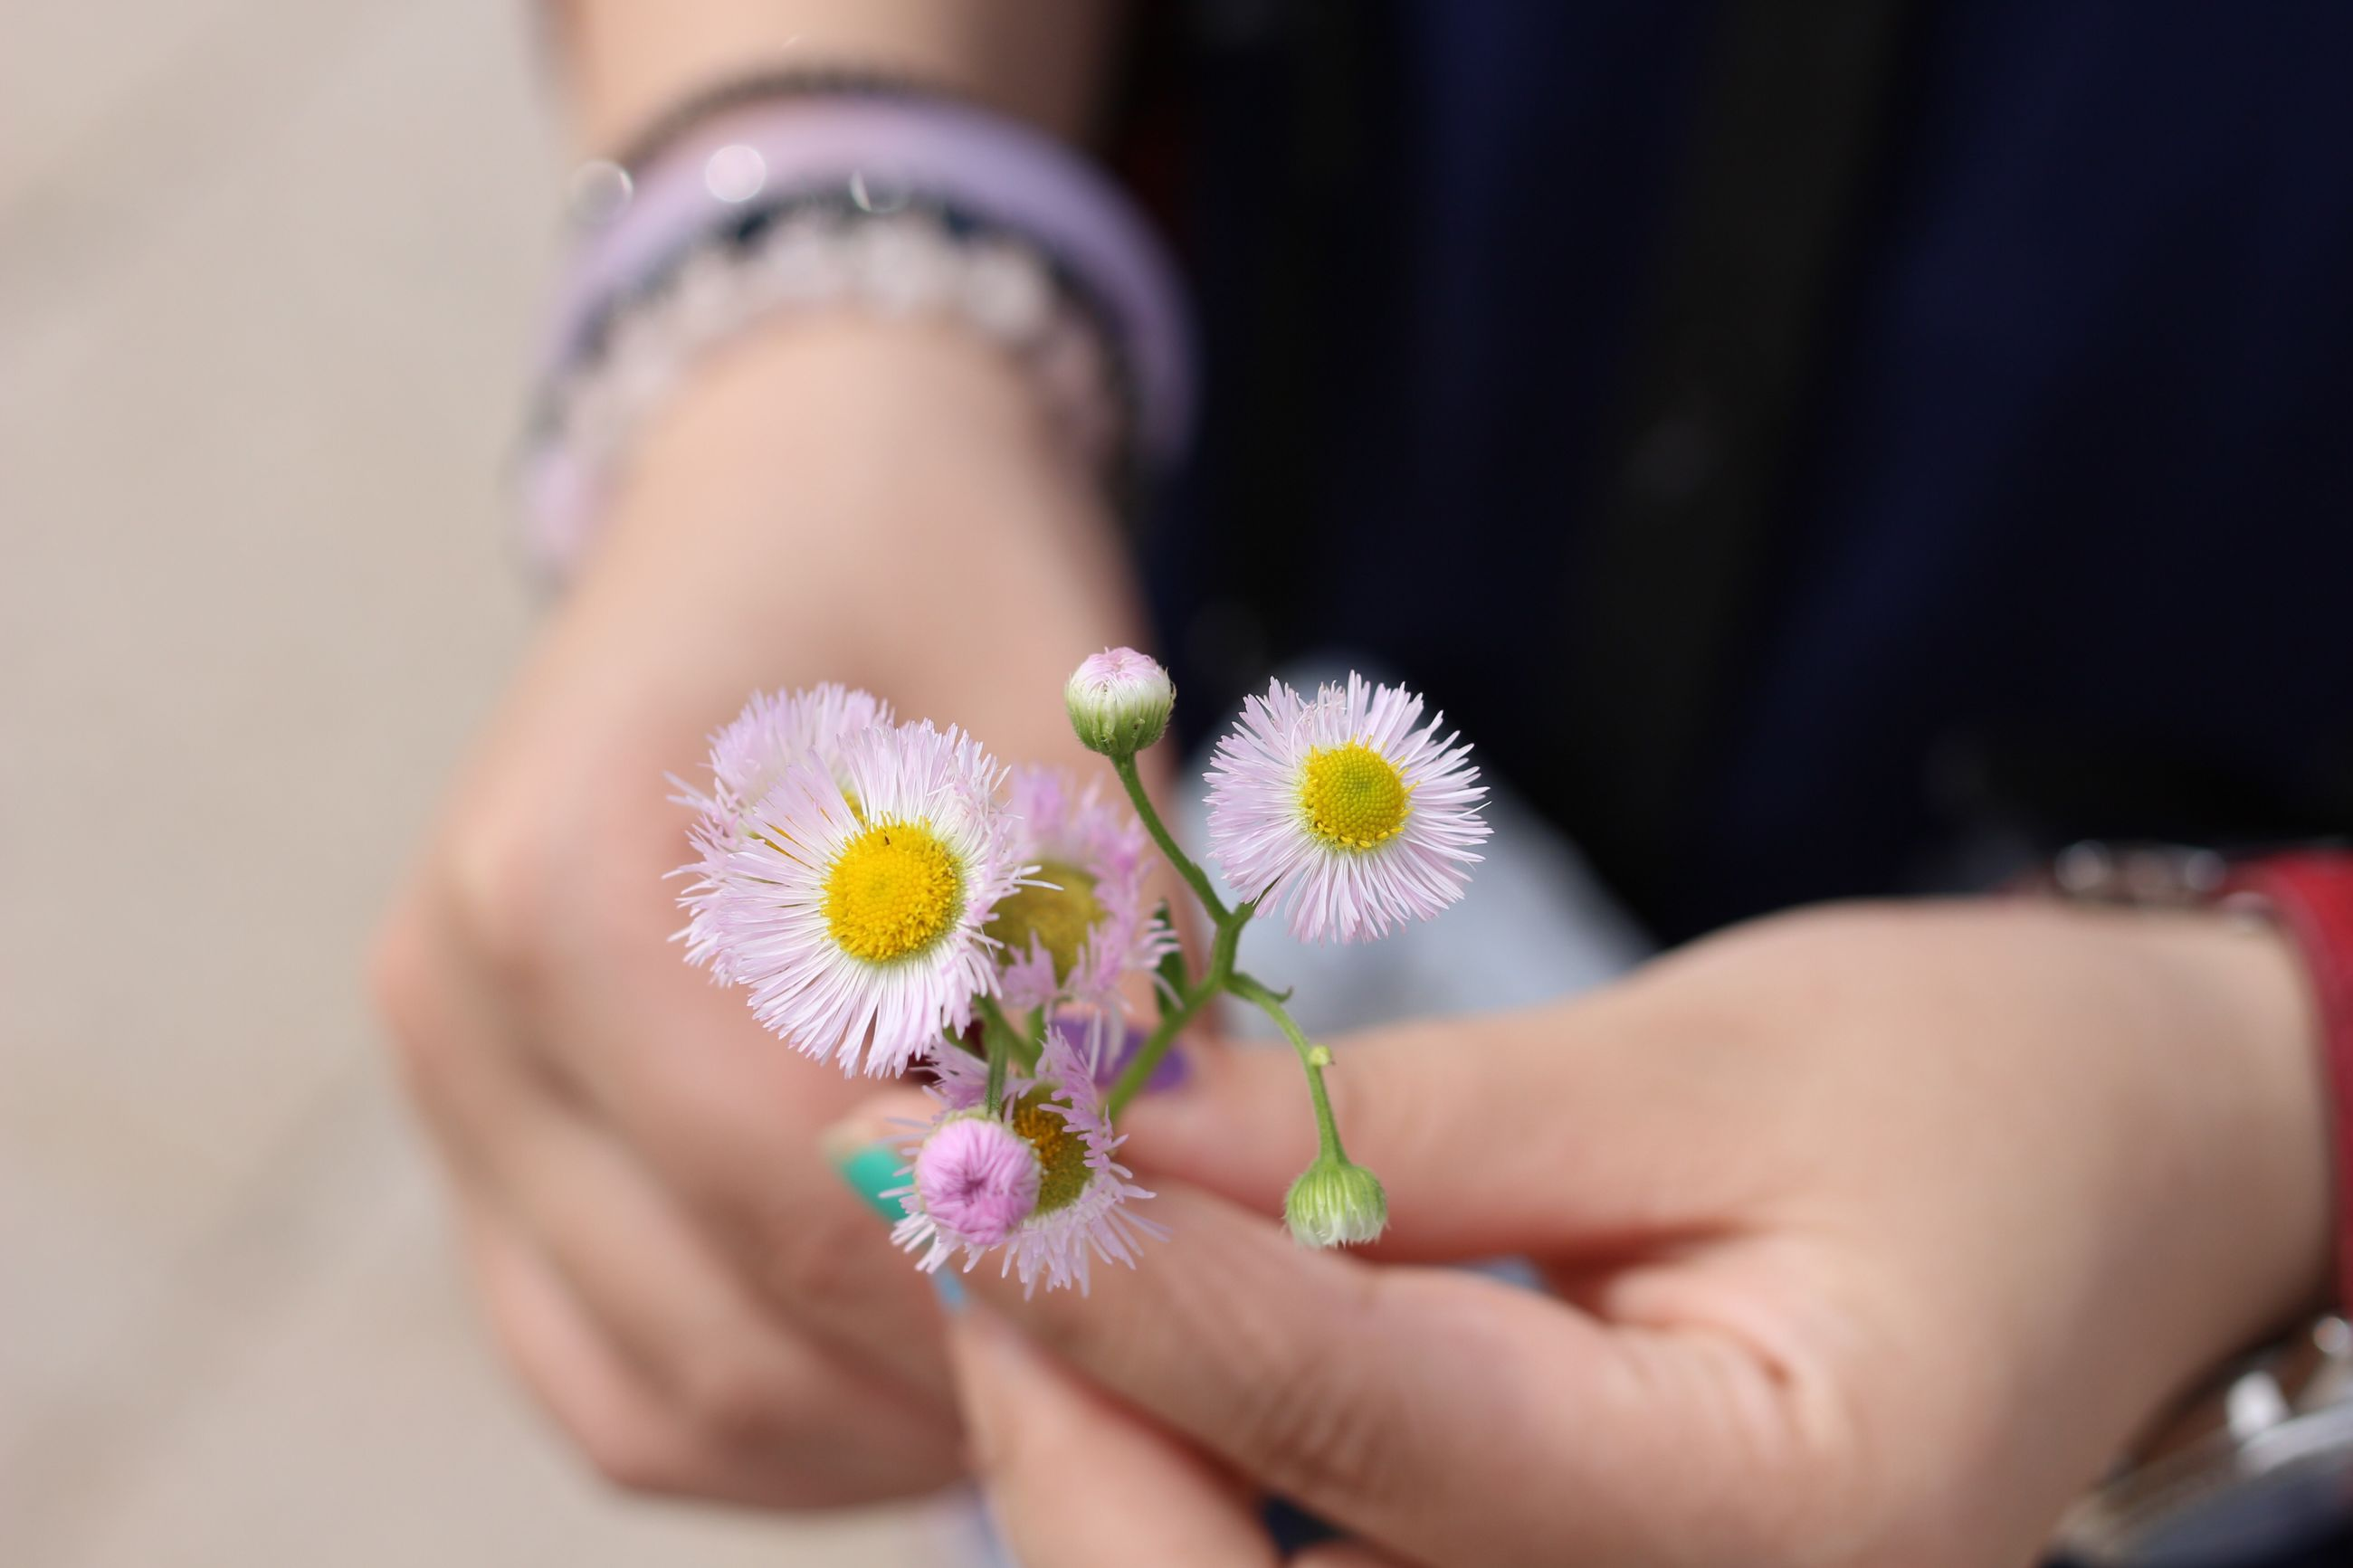 person, flower, holding, part of, fragility, human finger, freshness, cropped, flower head, focus on foreground, petal, unrecognizable person, lifestyles, personal perspective, daisy, leisure activity